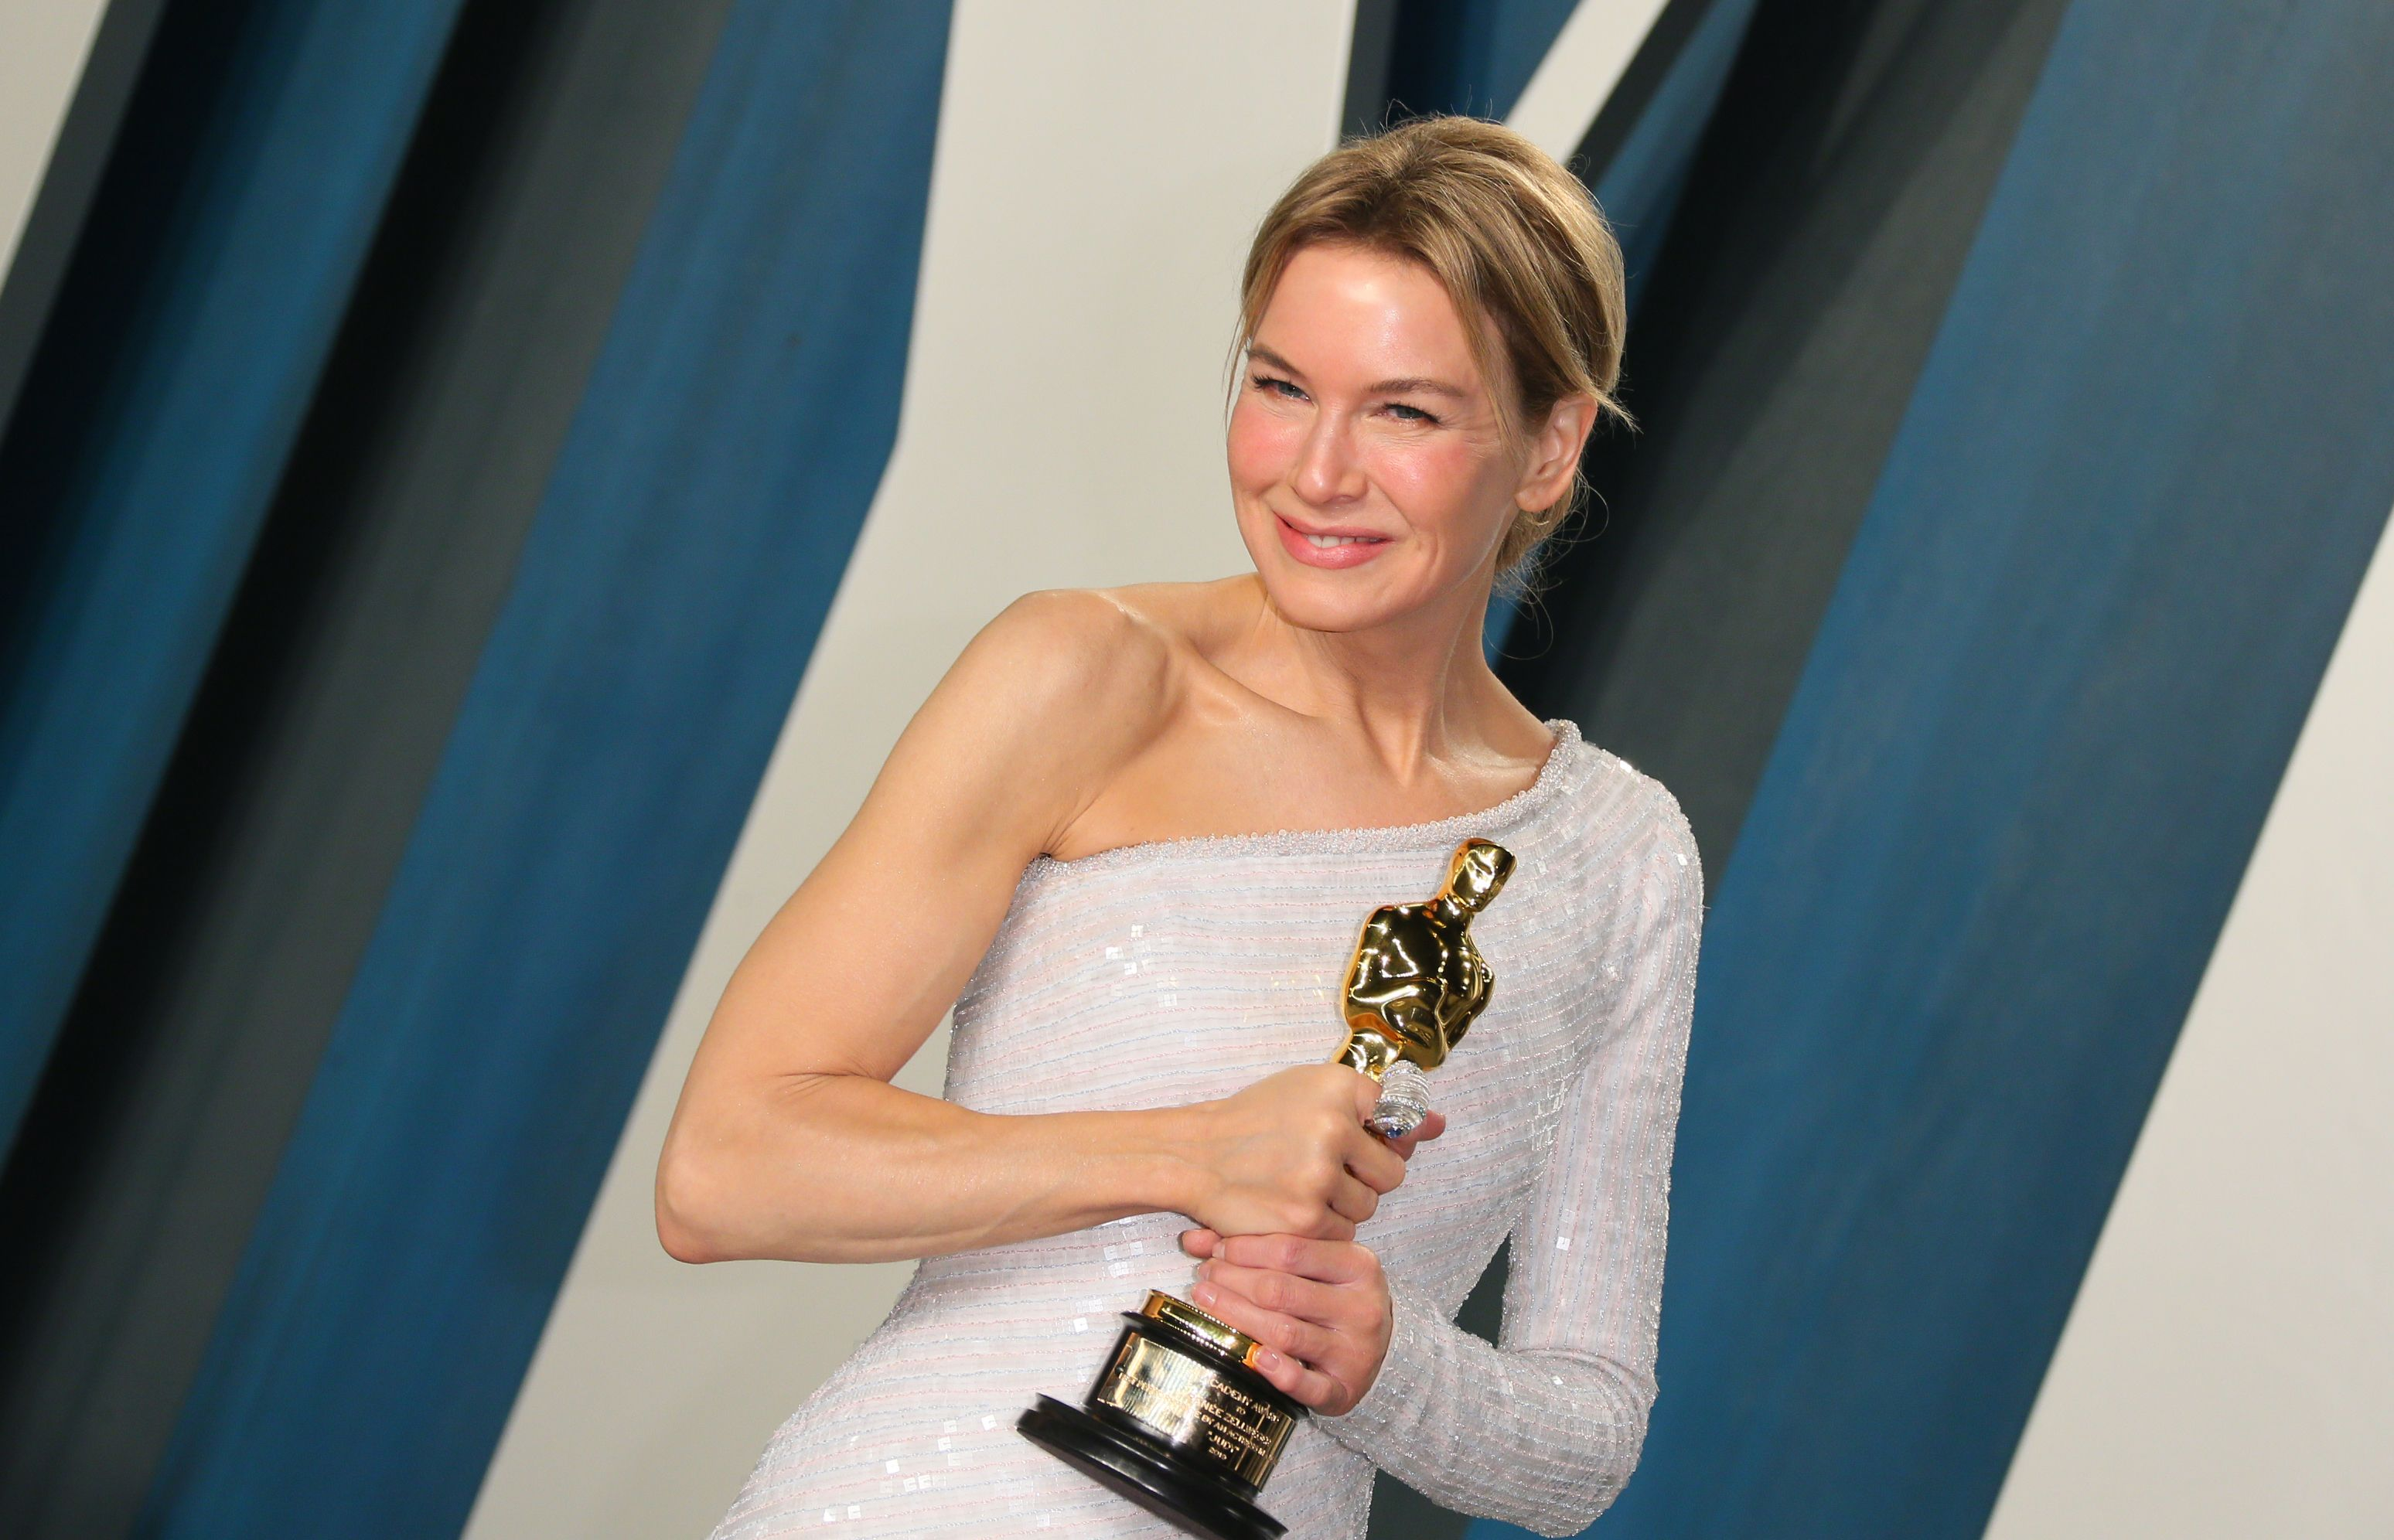 Rene Zellweger Oscars 2020 All of Renes best moments 3096x1992